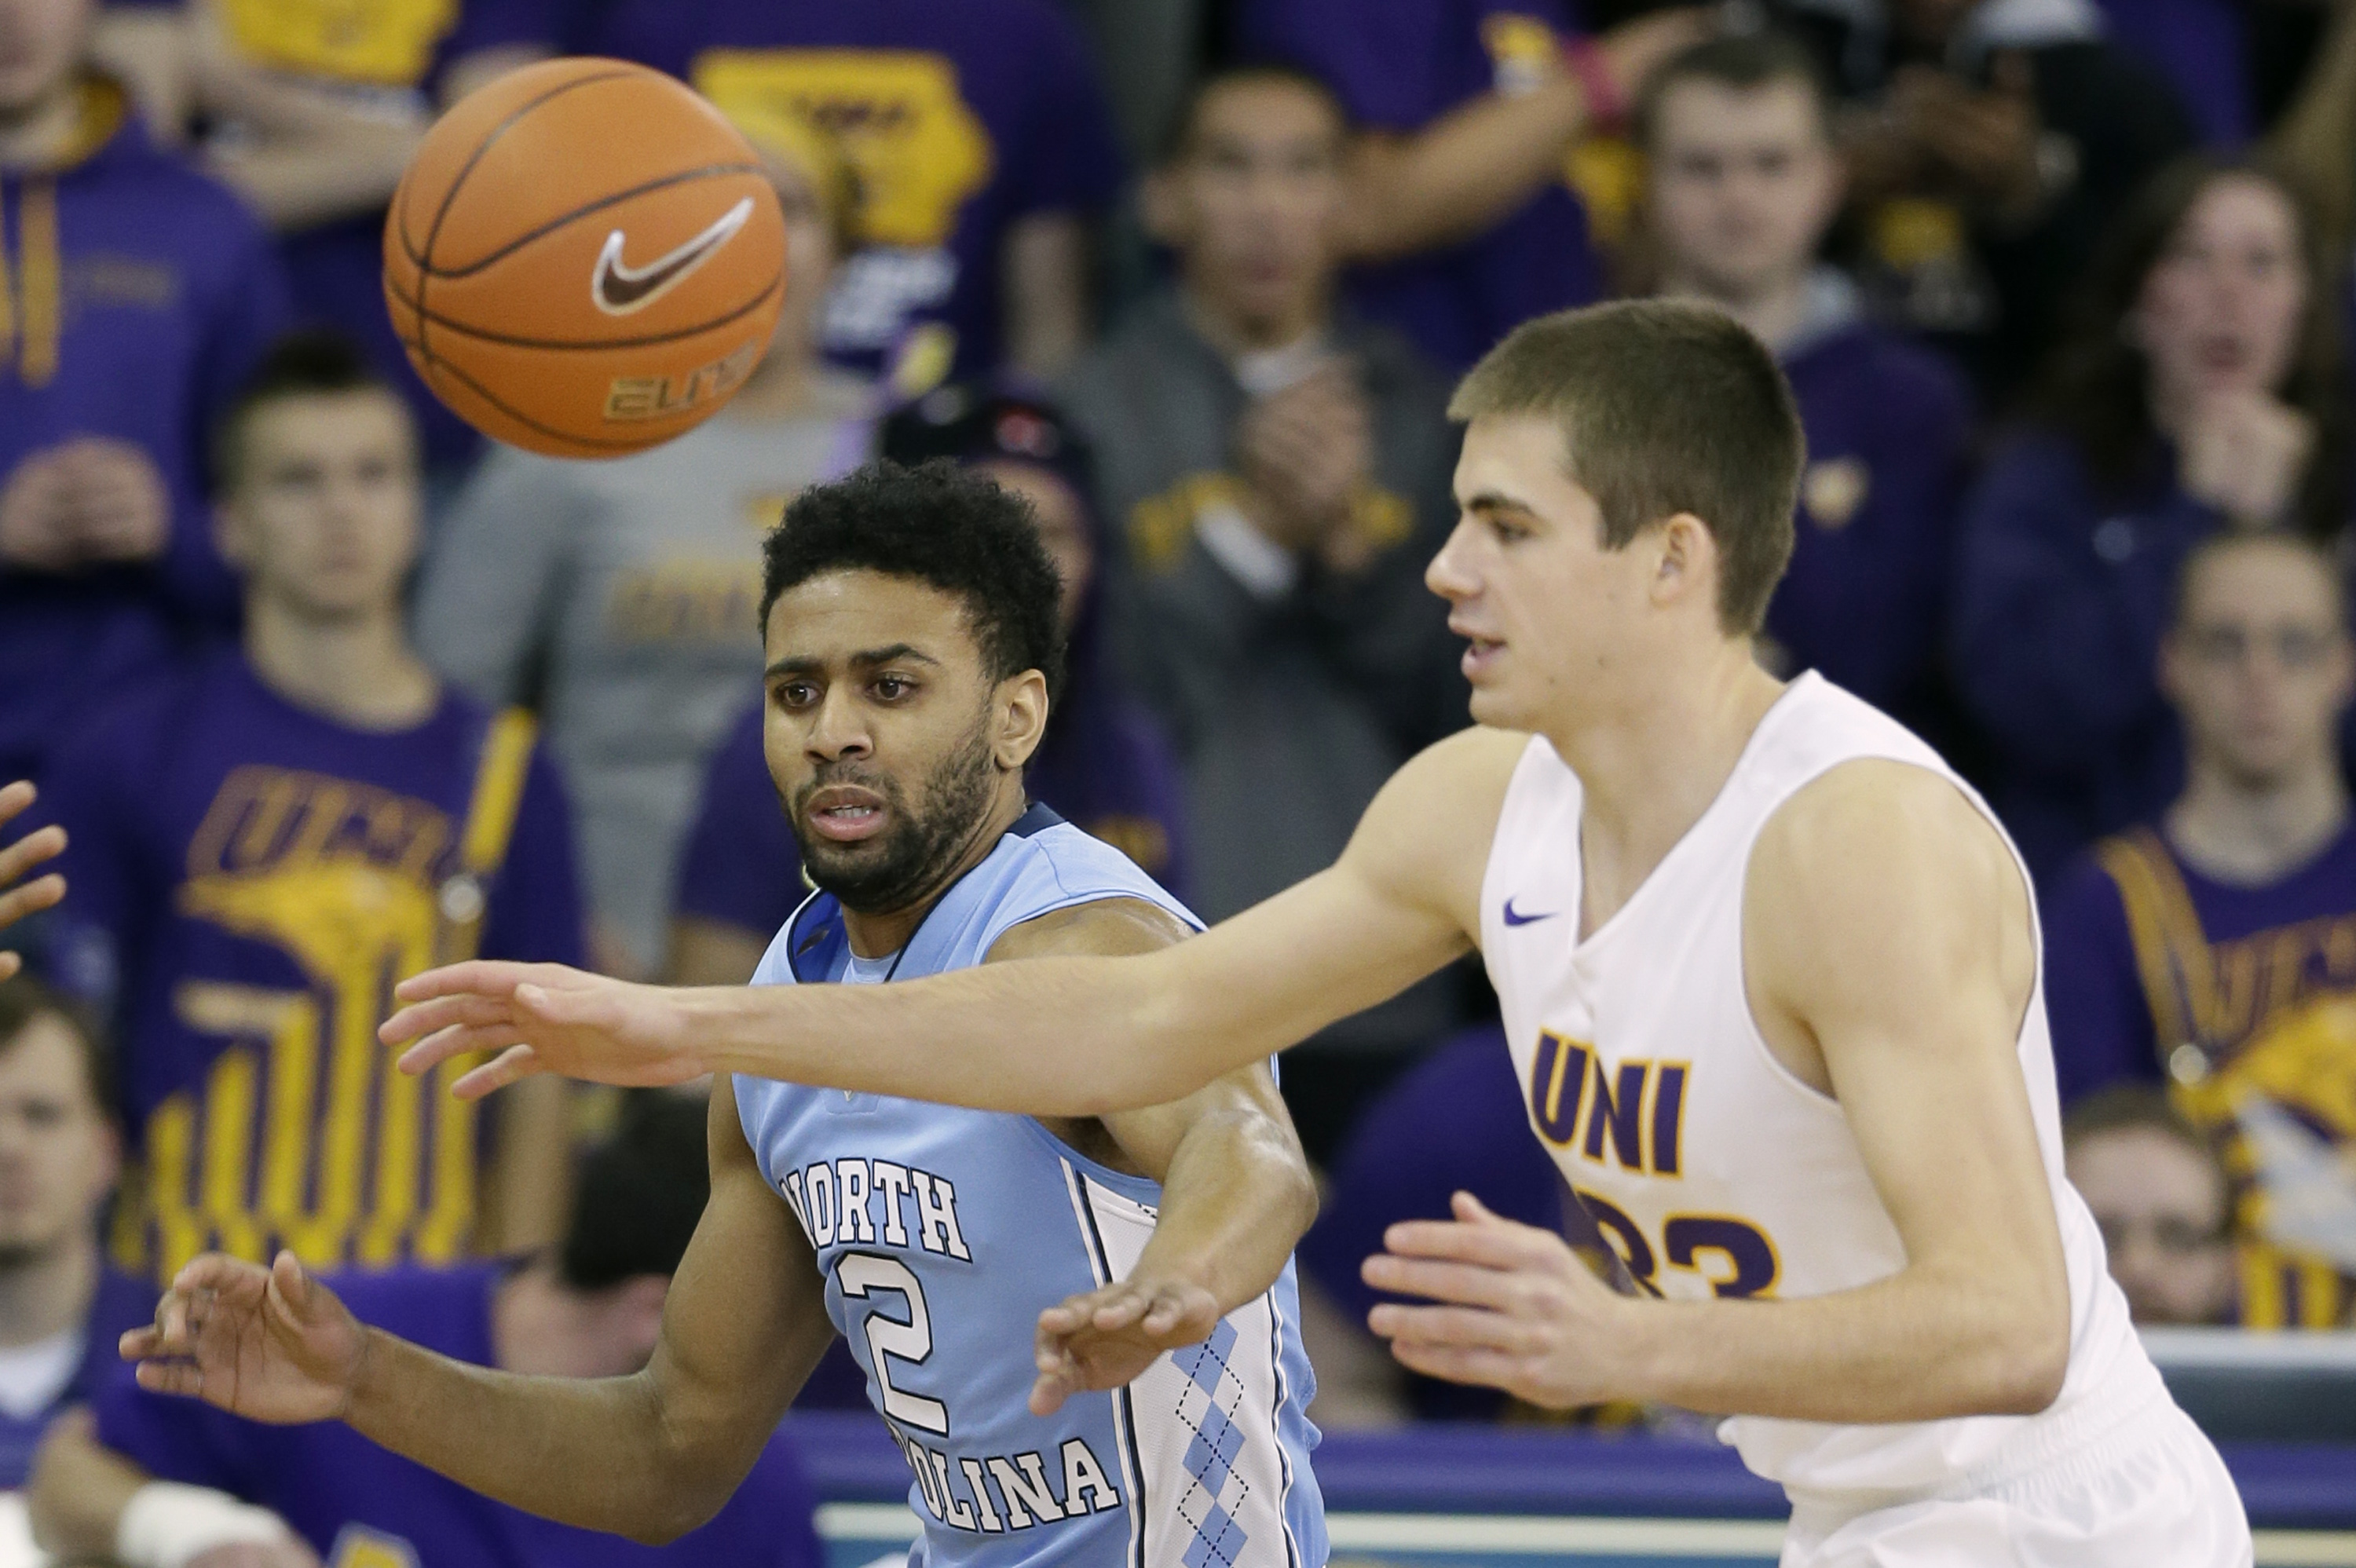 North Carolina guard Joel Berry II, left, tries to steal the ball from Northern Iowa guard Wyatt Lohaus, right, during the first half of an NCAA college basketball game, Saturday, Nov. 21, 2015, in Cedar Falls, Iowa. (AP Photo/Charlie Neibergall)